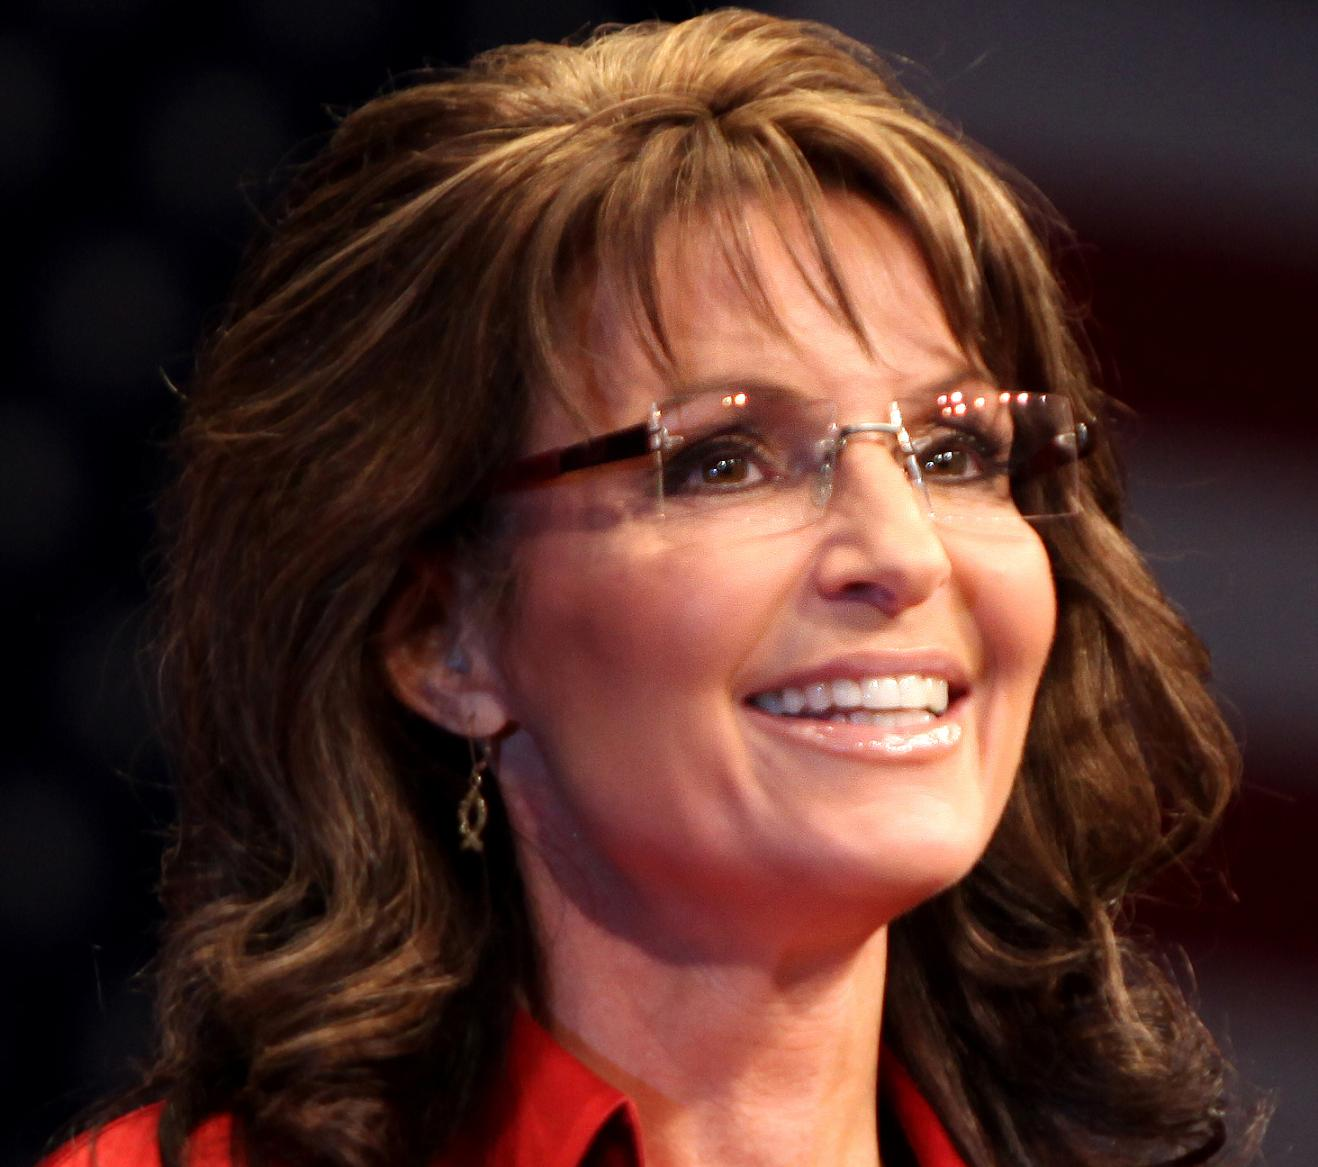 Sarah palin bio net worth height facts dead or alive sarah palin bio net worth facts thecheapjerseys Choice Image